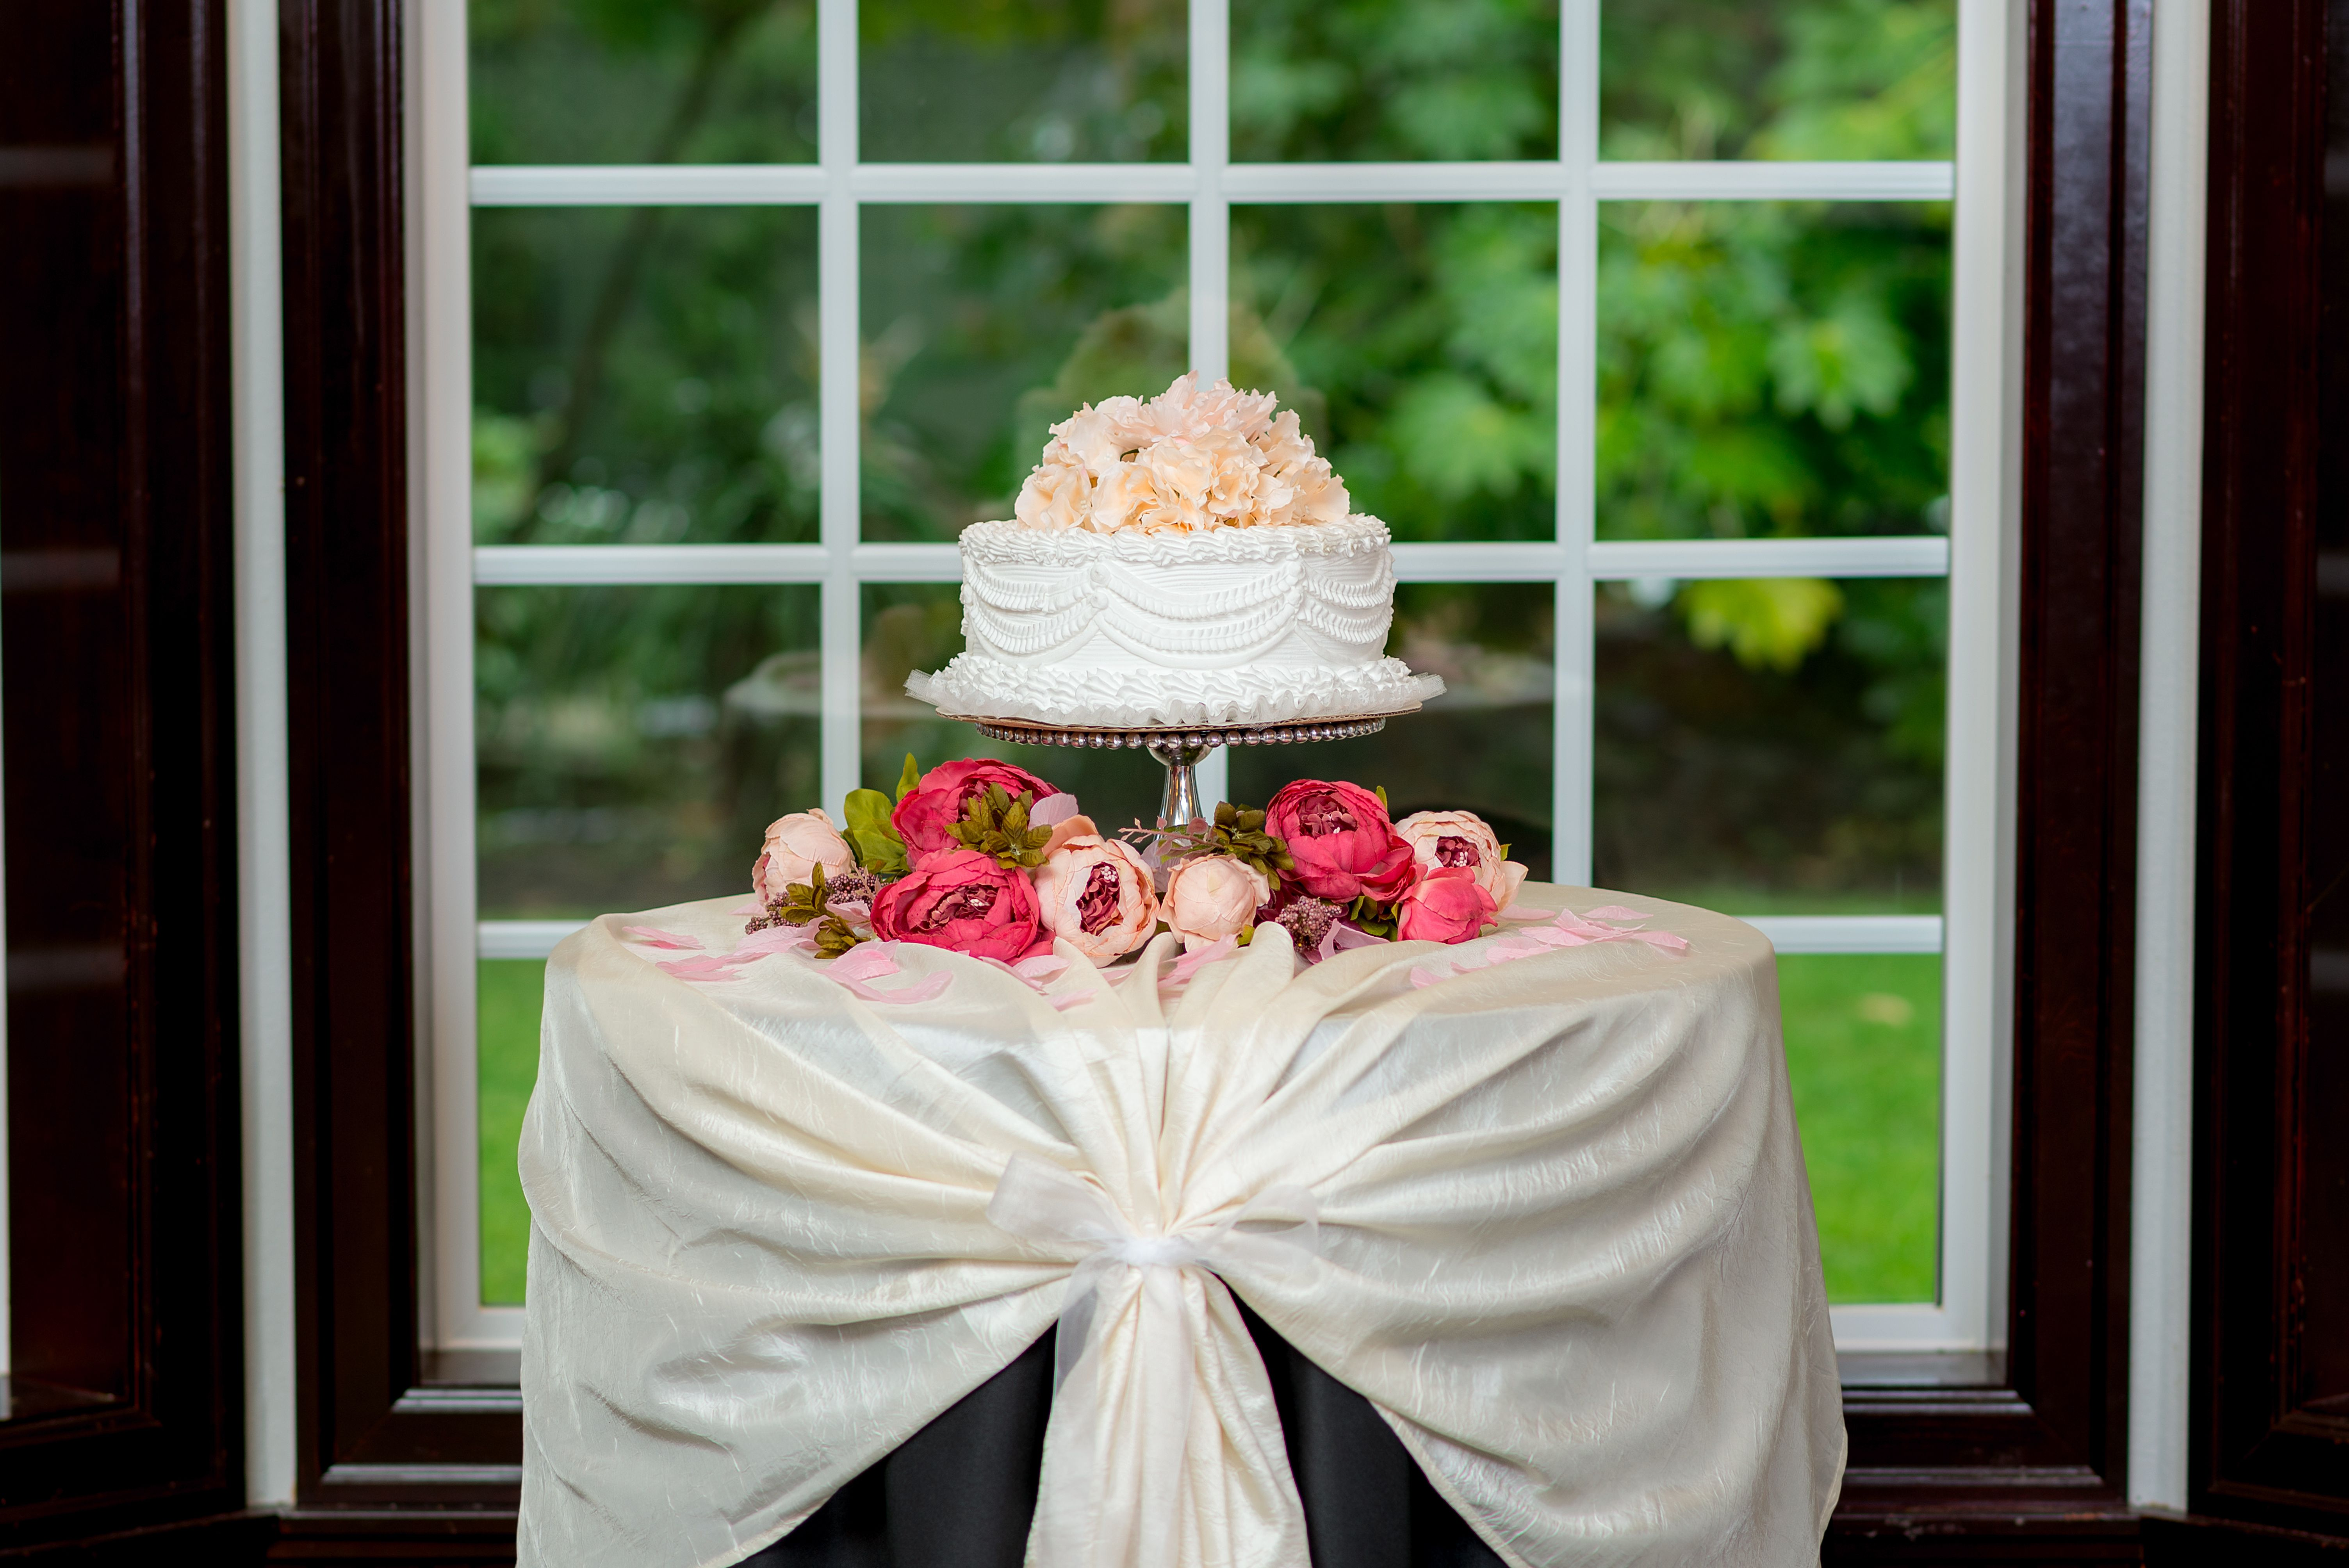 Layered tablecloths dress up the cake table delightful wedding